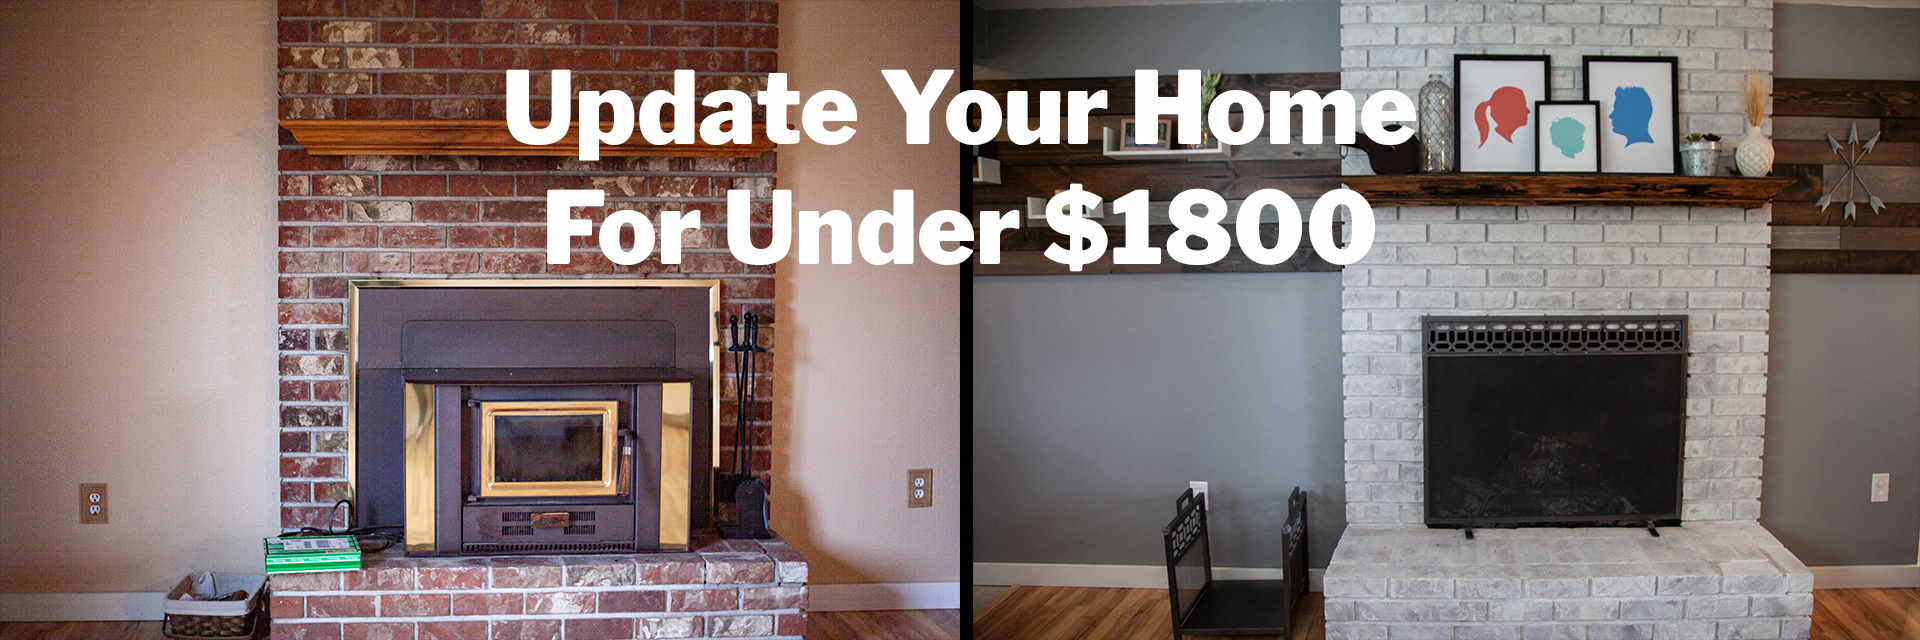 How to Update your Home for Under $1800